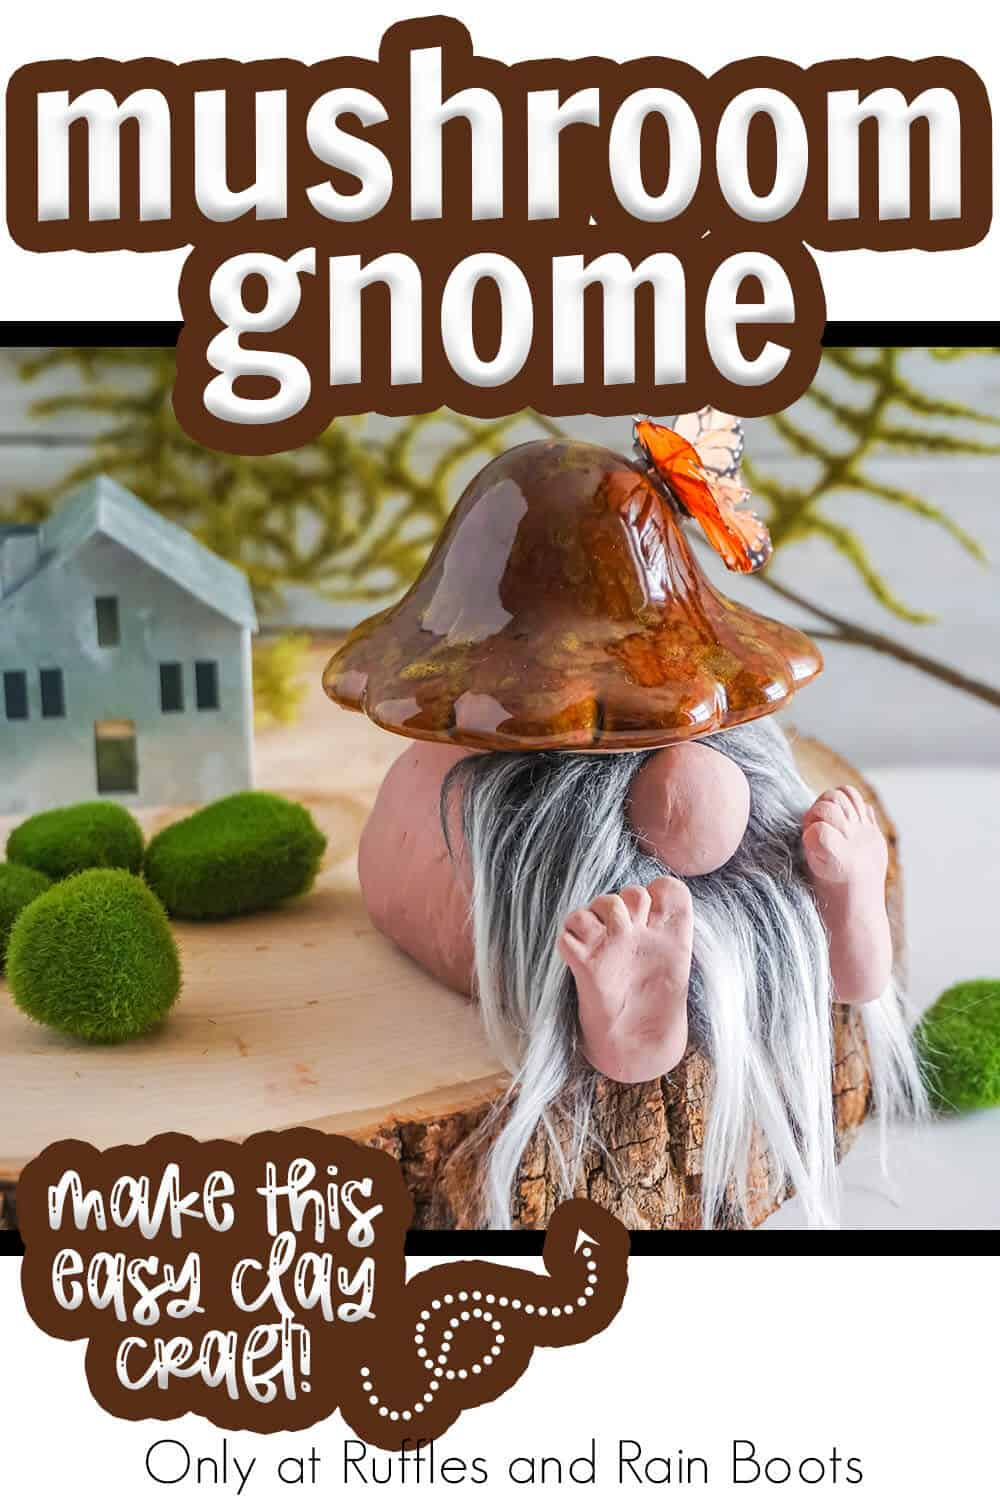 dollar store mushroom into a gnome mushroom with text which reads mushroom gnome make this easy clay craft